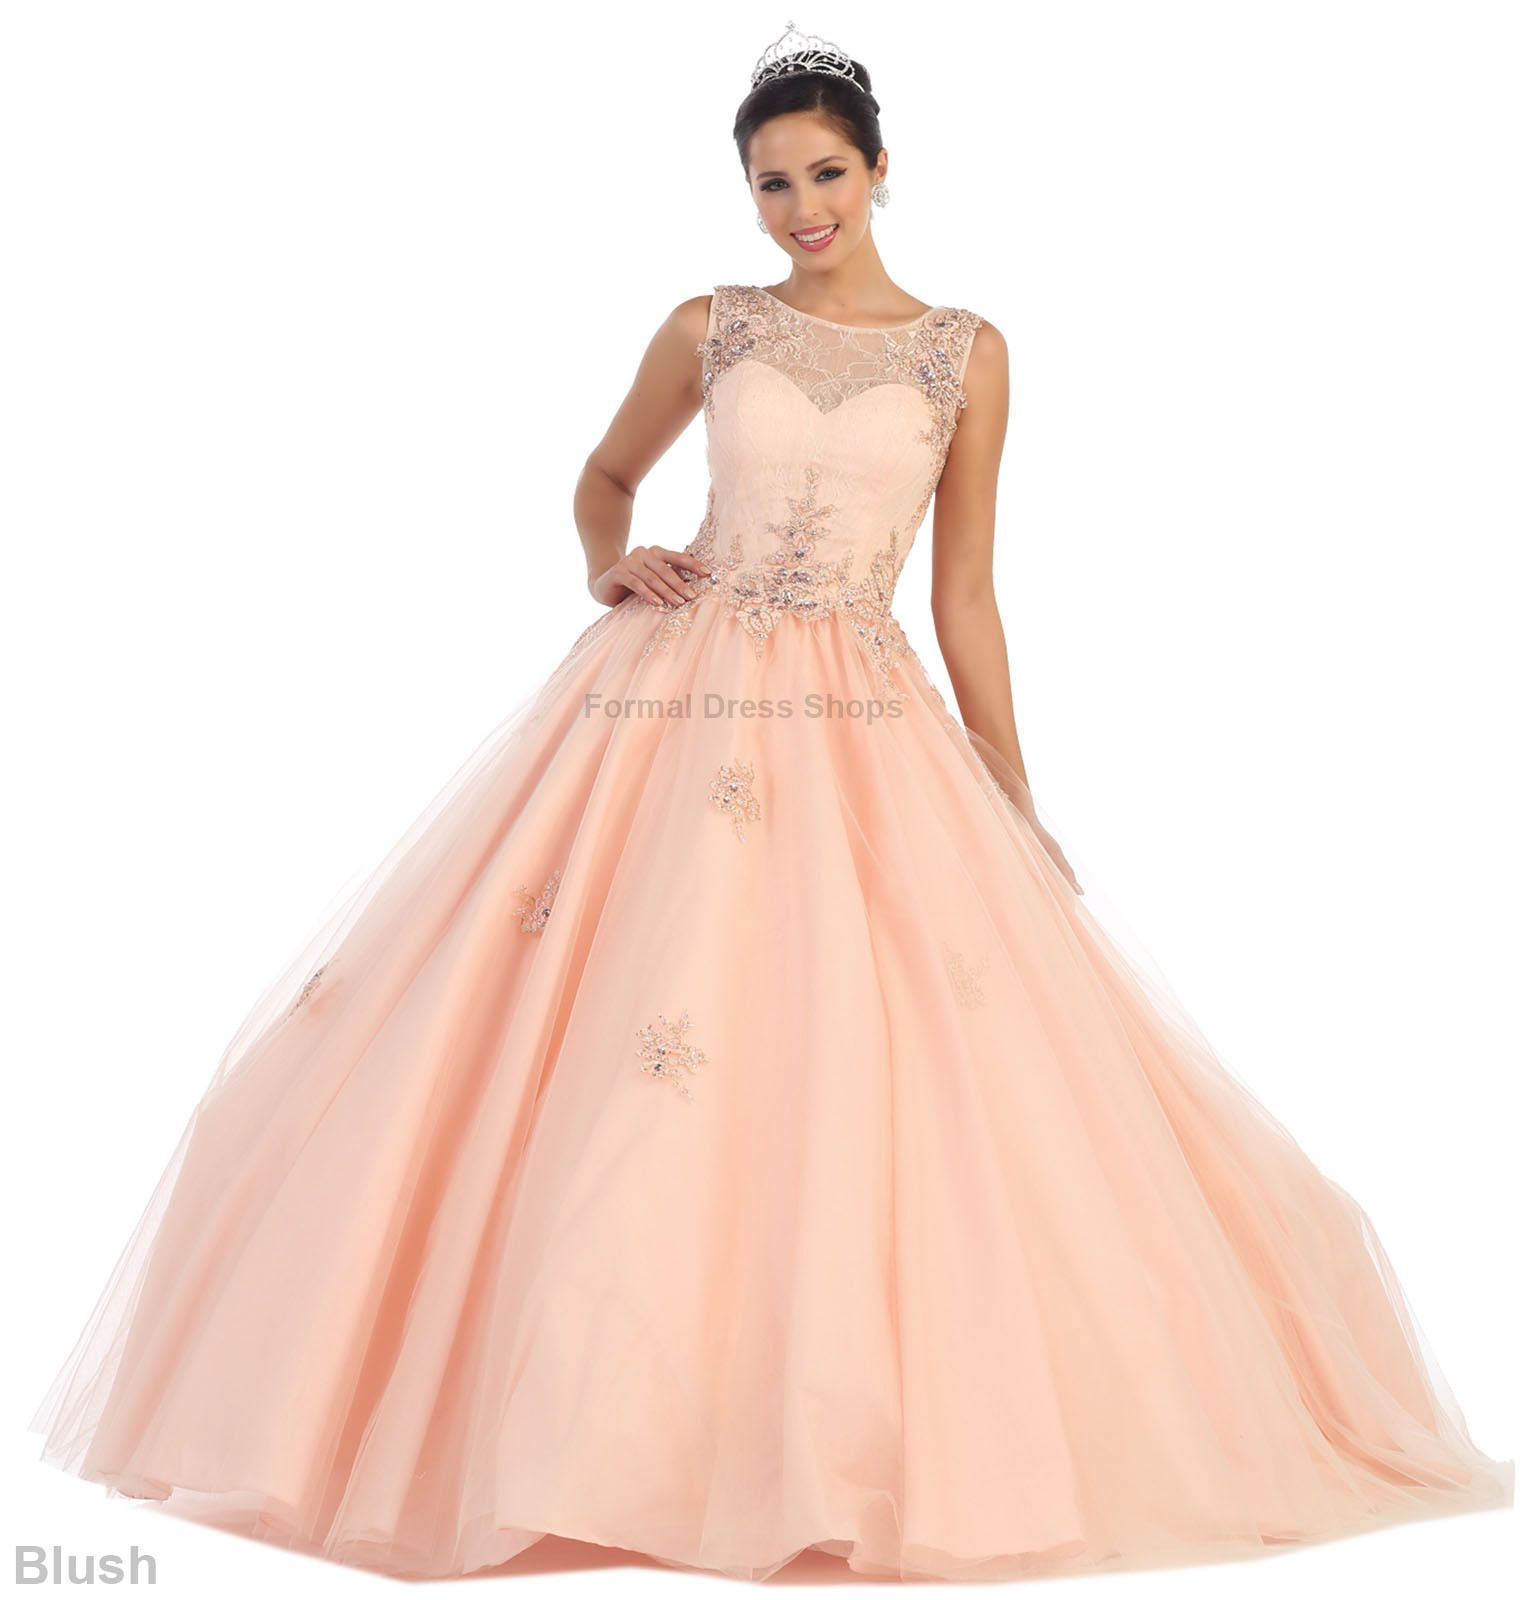 ae9ba2fc548 Sweet 16 Party Prom Queen Dress Pageant Designer Military Ball Gown  Masquerade